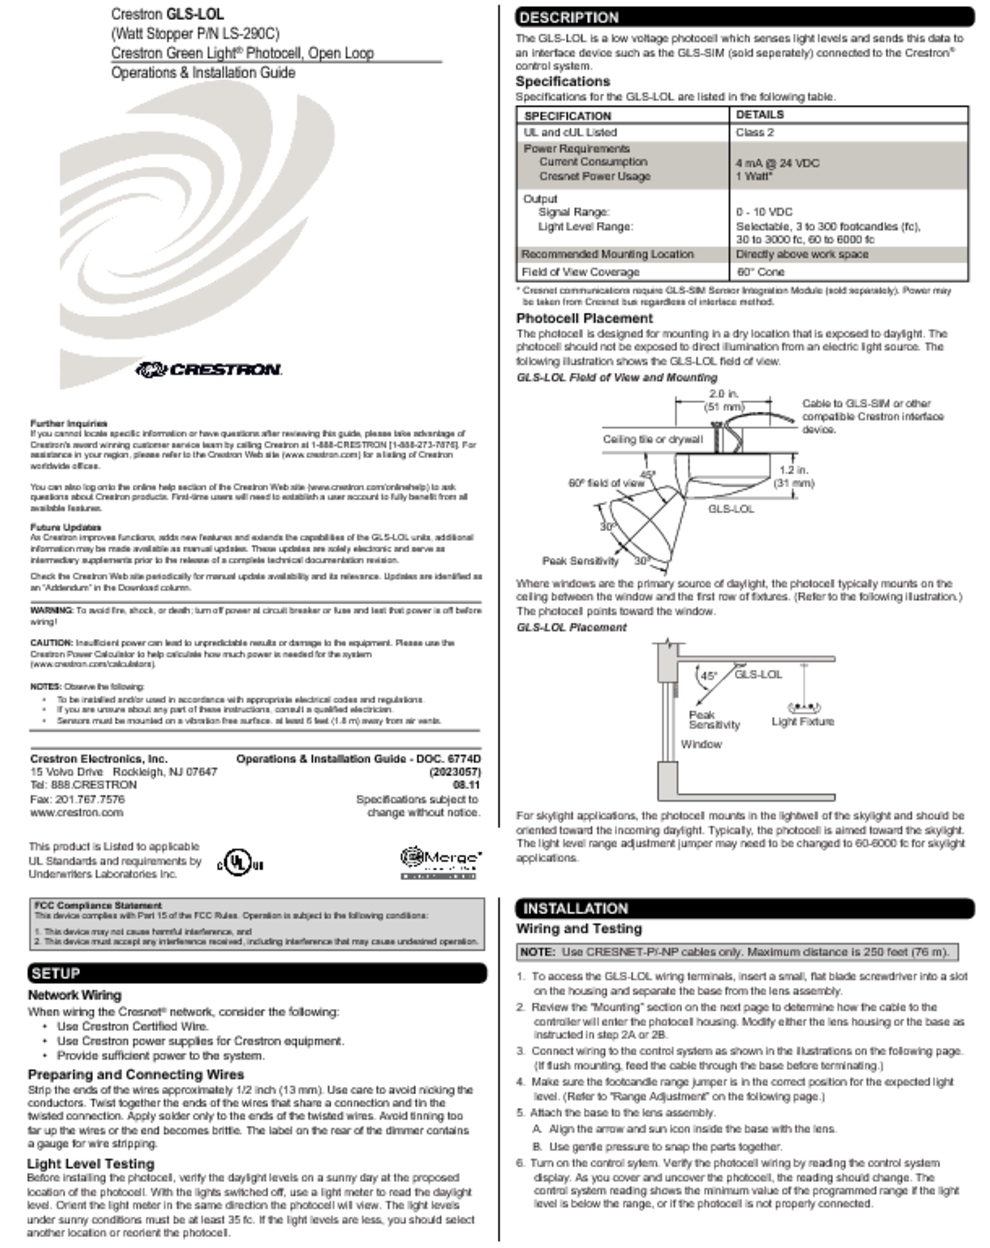 Stud Sensor Users Guides Page 9 Wiring Photosensorphotocellpng Wattstopper P N Ls 290c Photocell Light Gls Lol Manuals